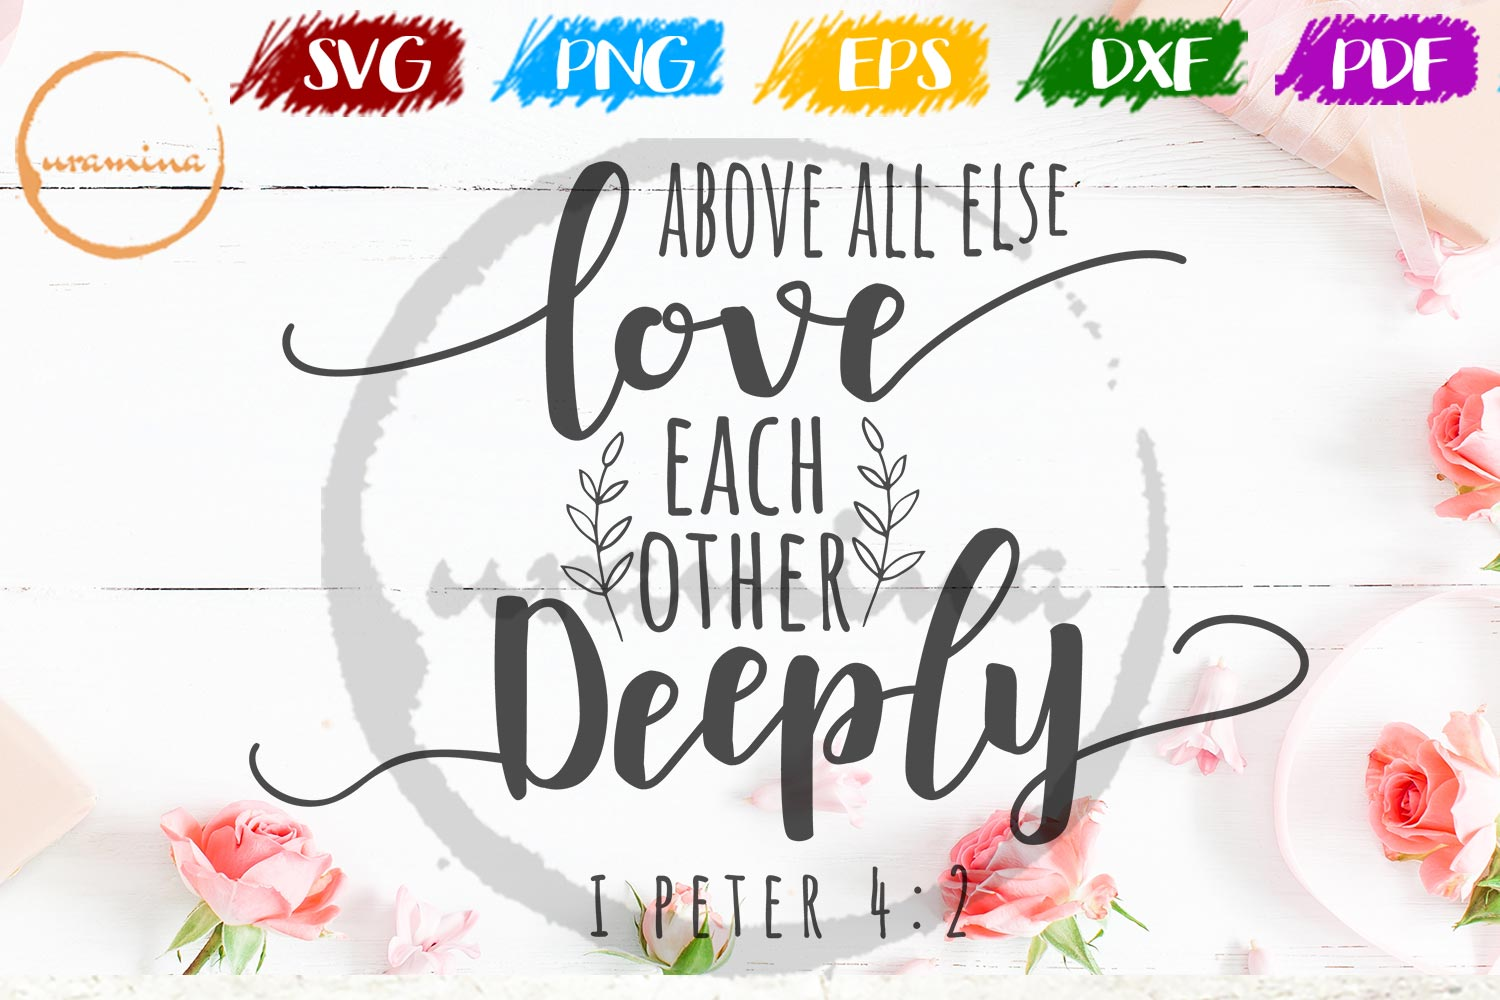 Download Free Above All Else Love Each Other Deeply Graphic By Uramina for Cricut Explore, Silhouette and other cutting machines.